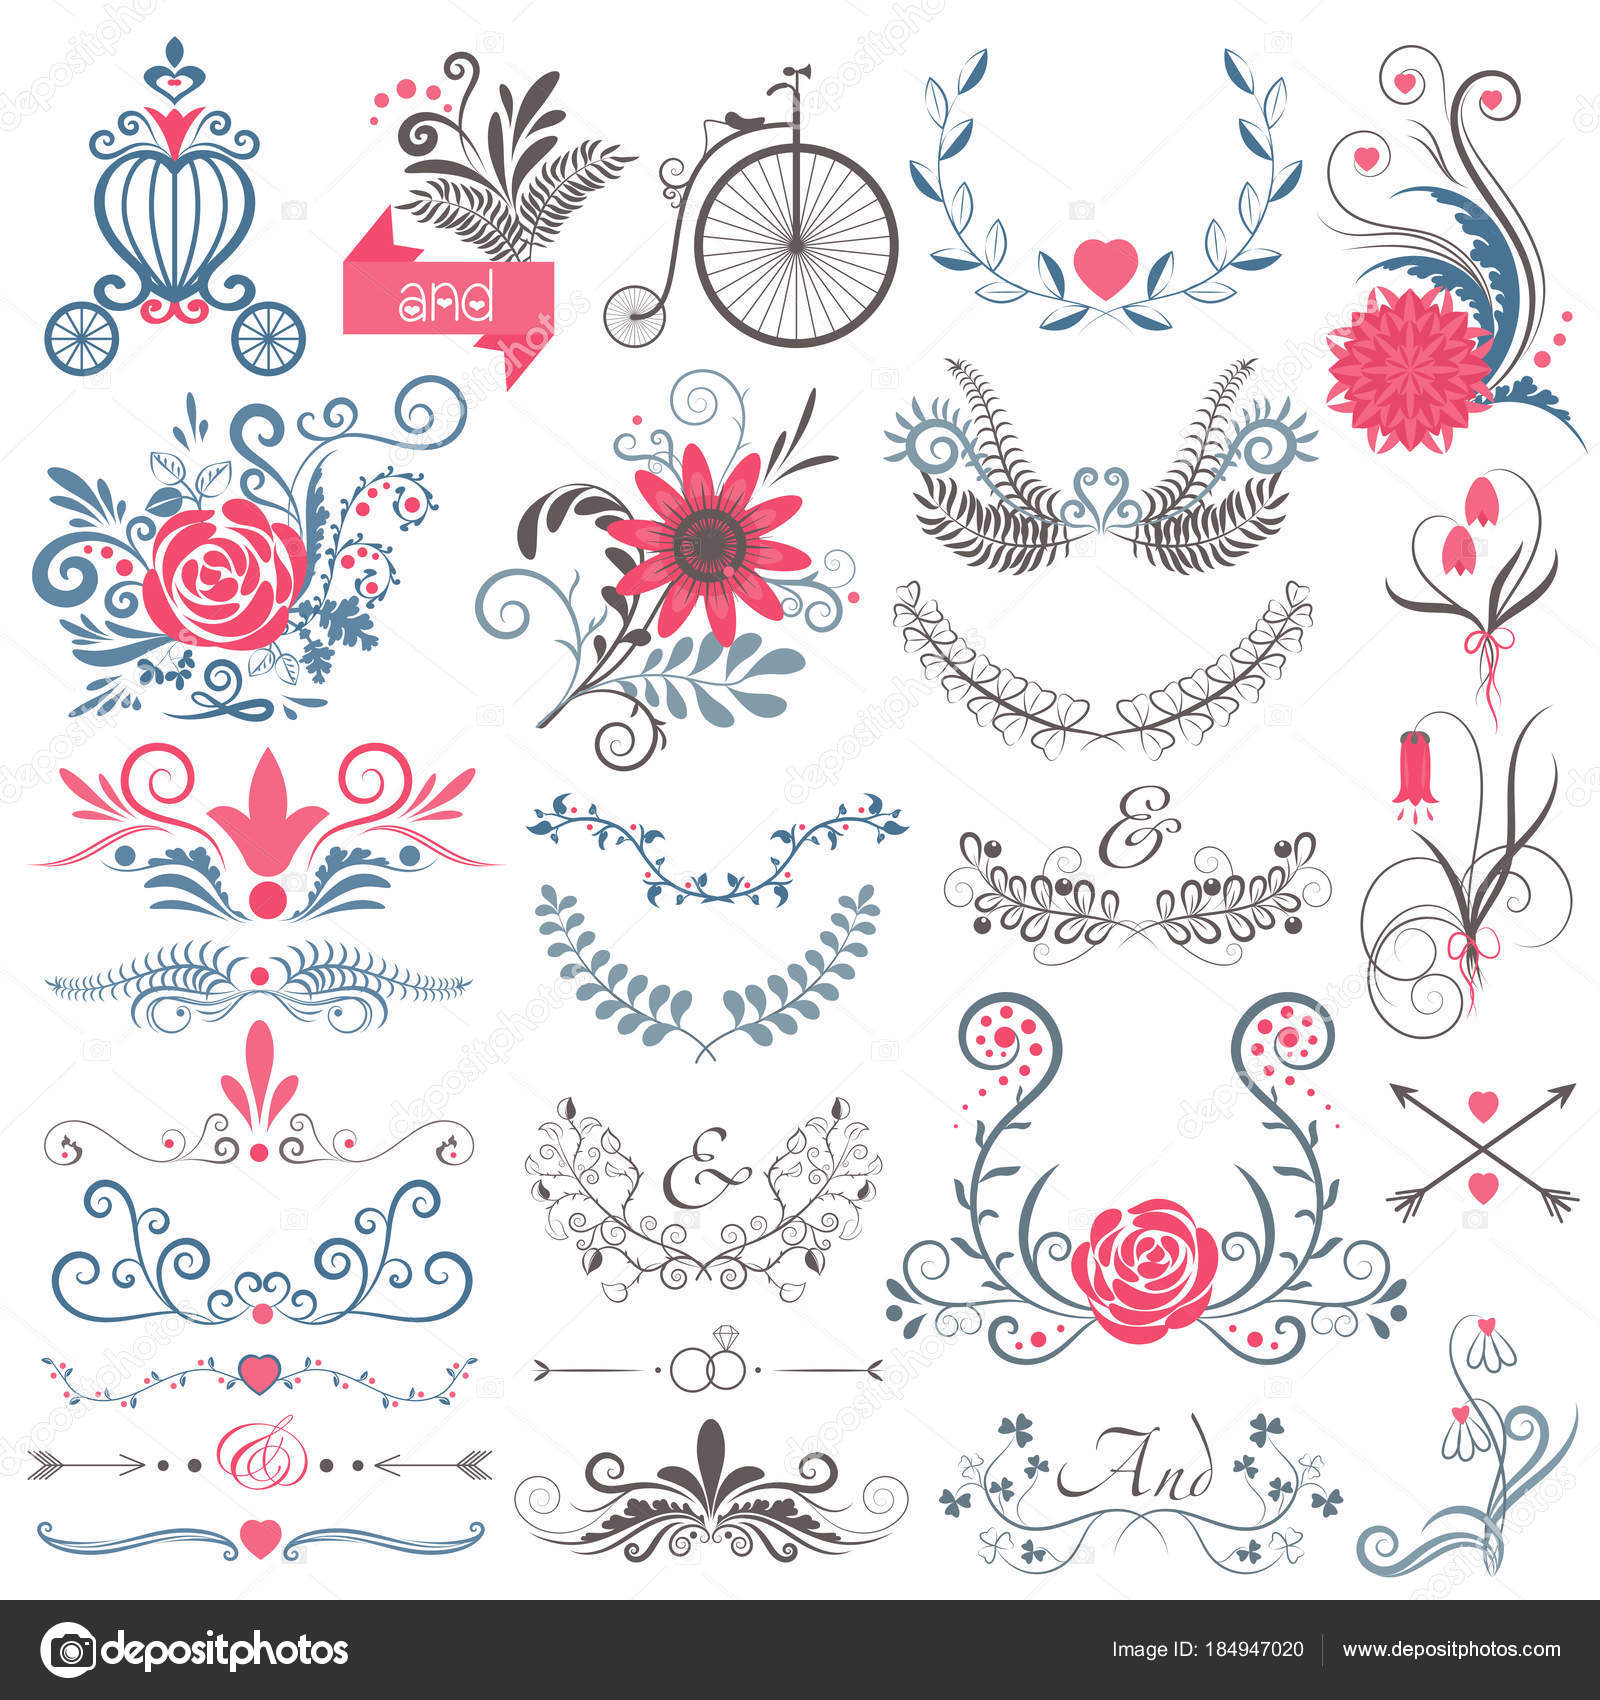 Rustic Hand Sketched Wedding Modern Vintage Graphic Collection Of Cute Floral Flowers Arrows Birds